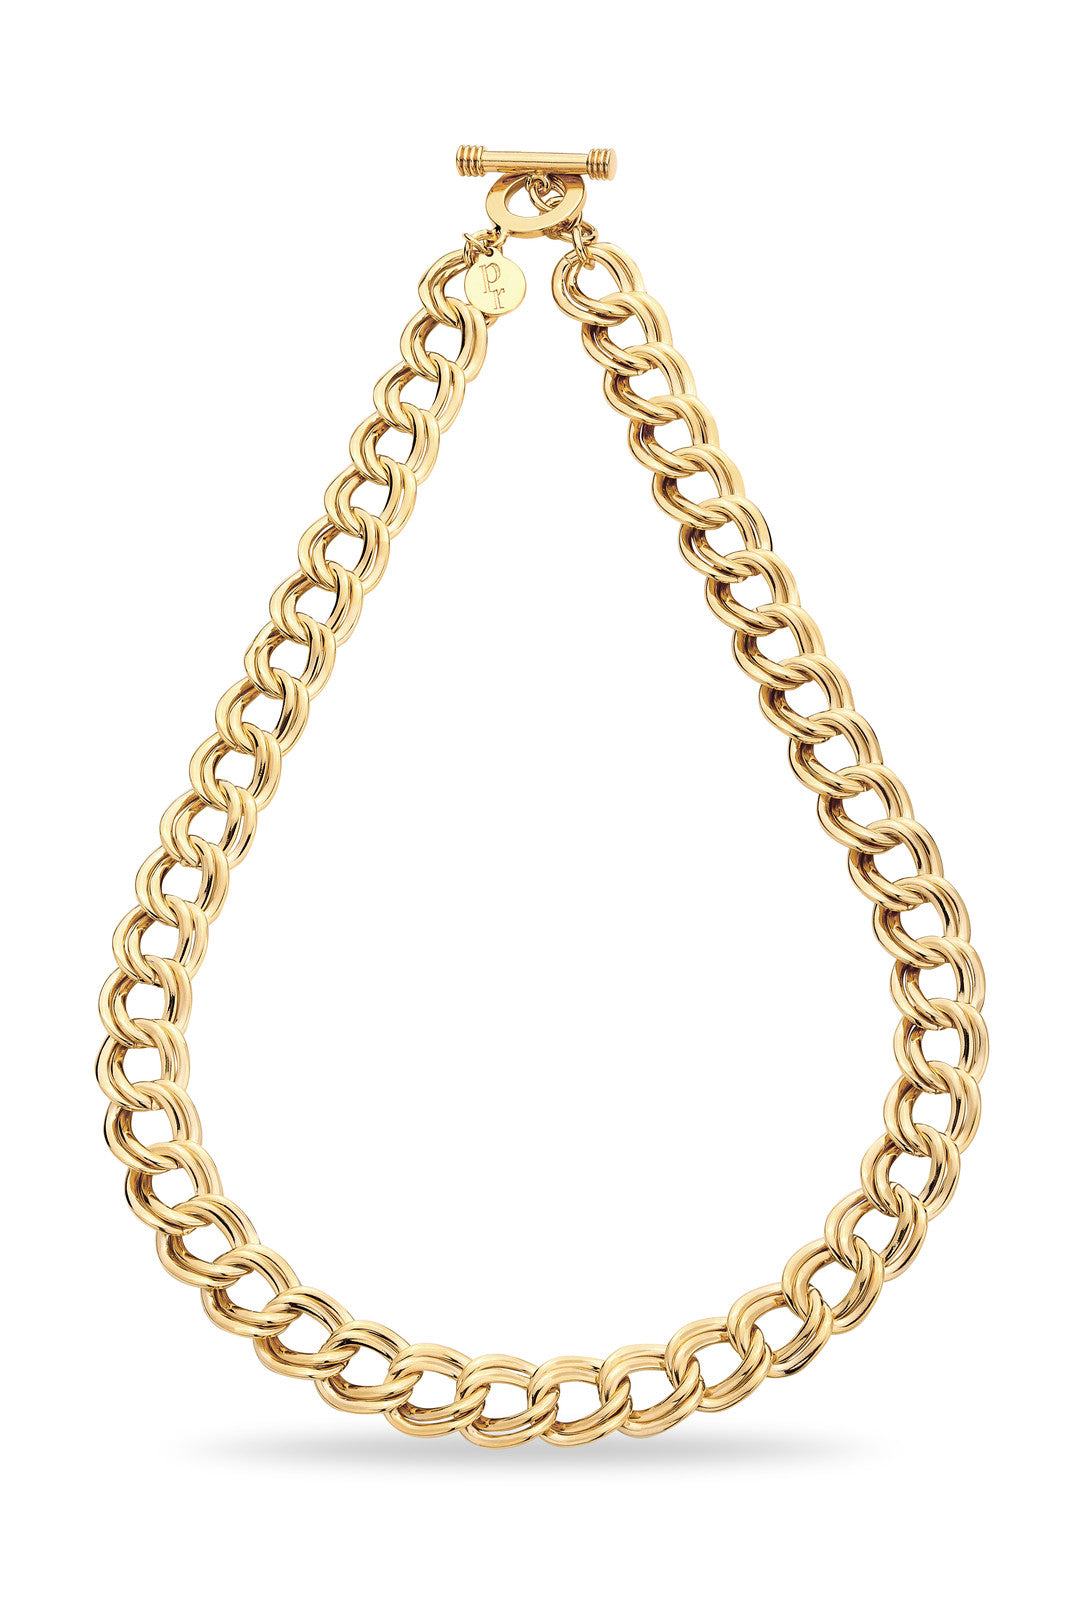 PATTY ROSE CHAIN No.1 NECKLACE